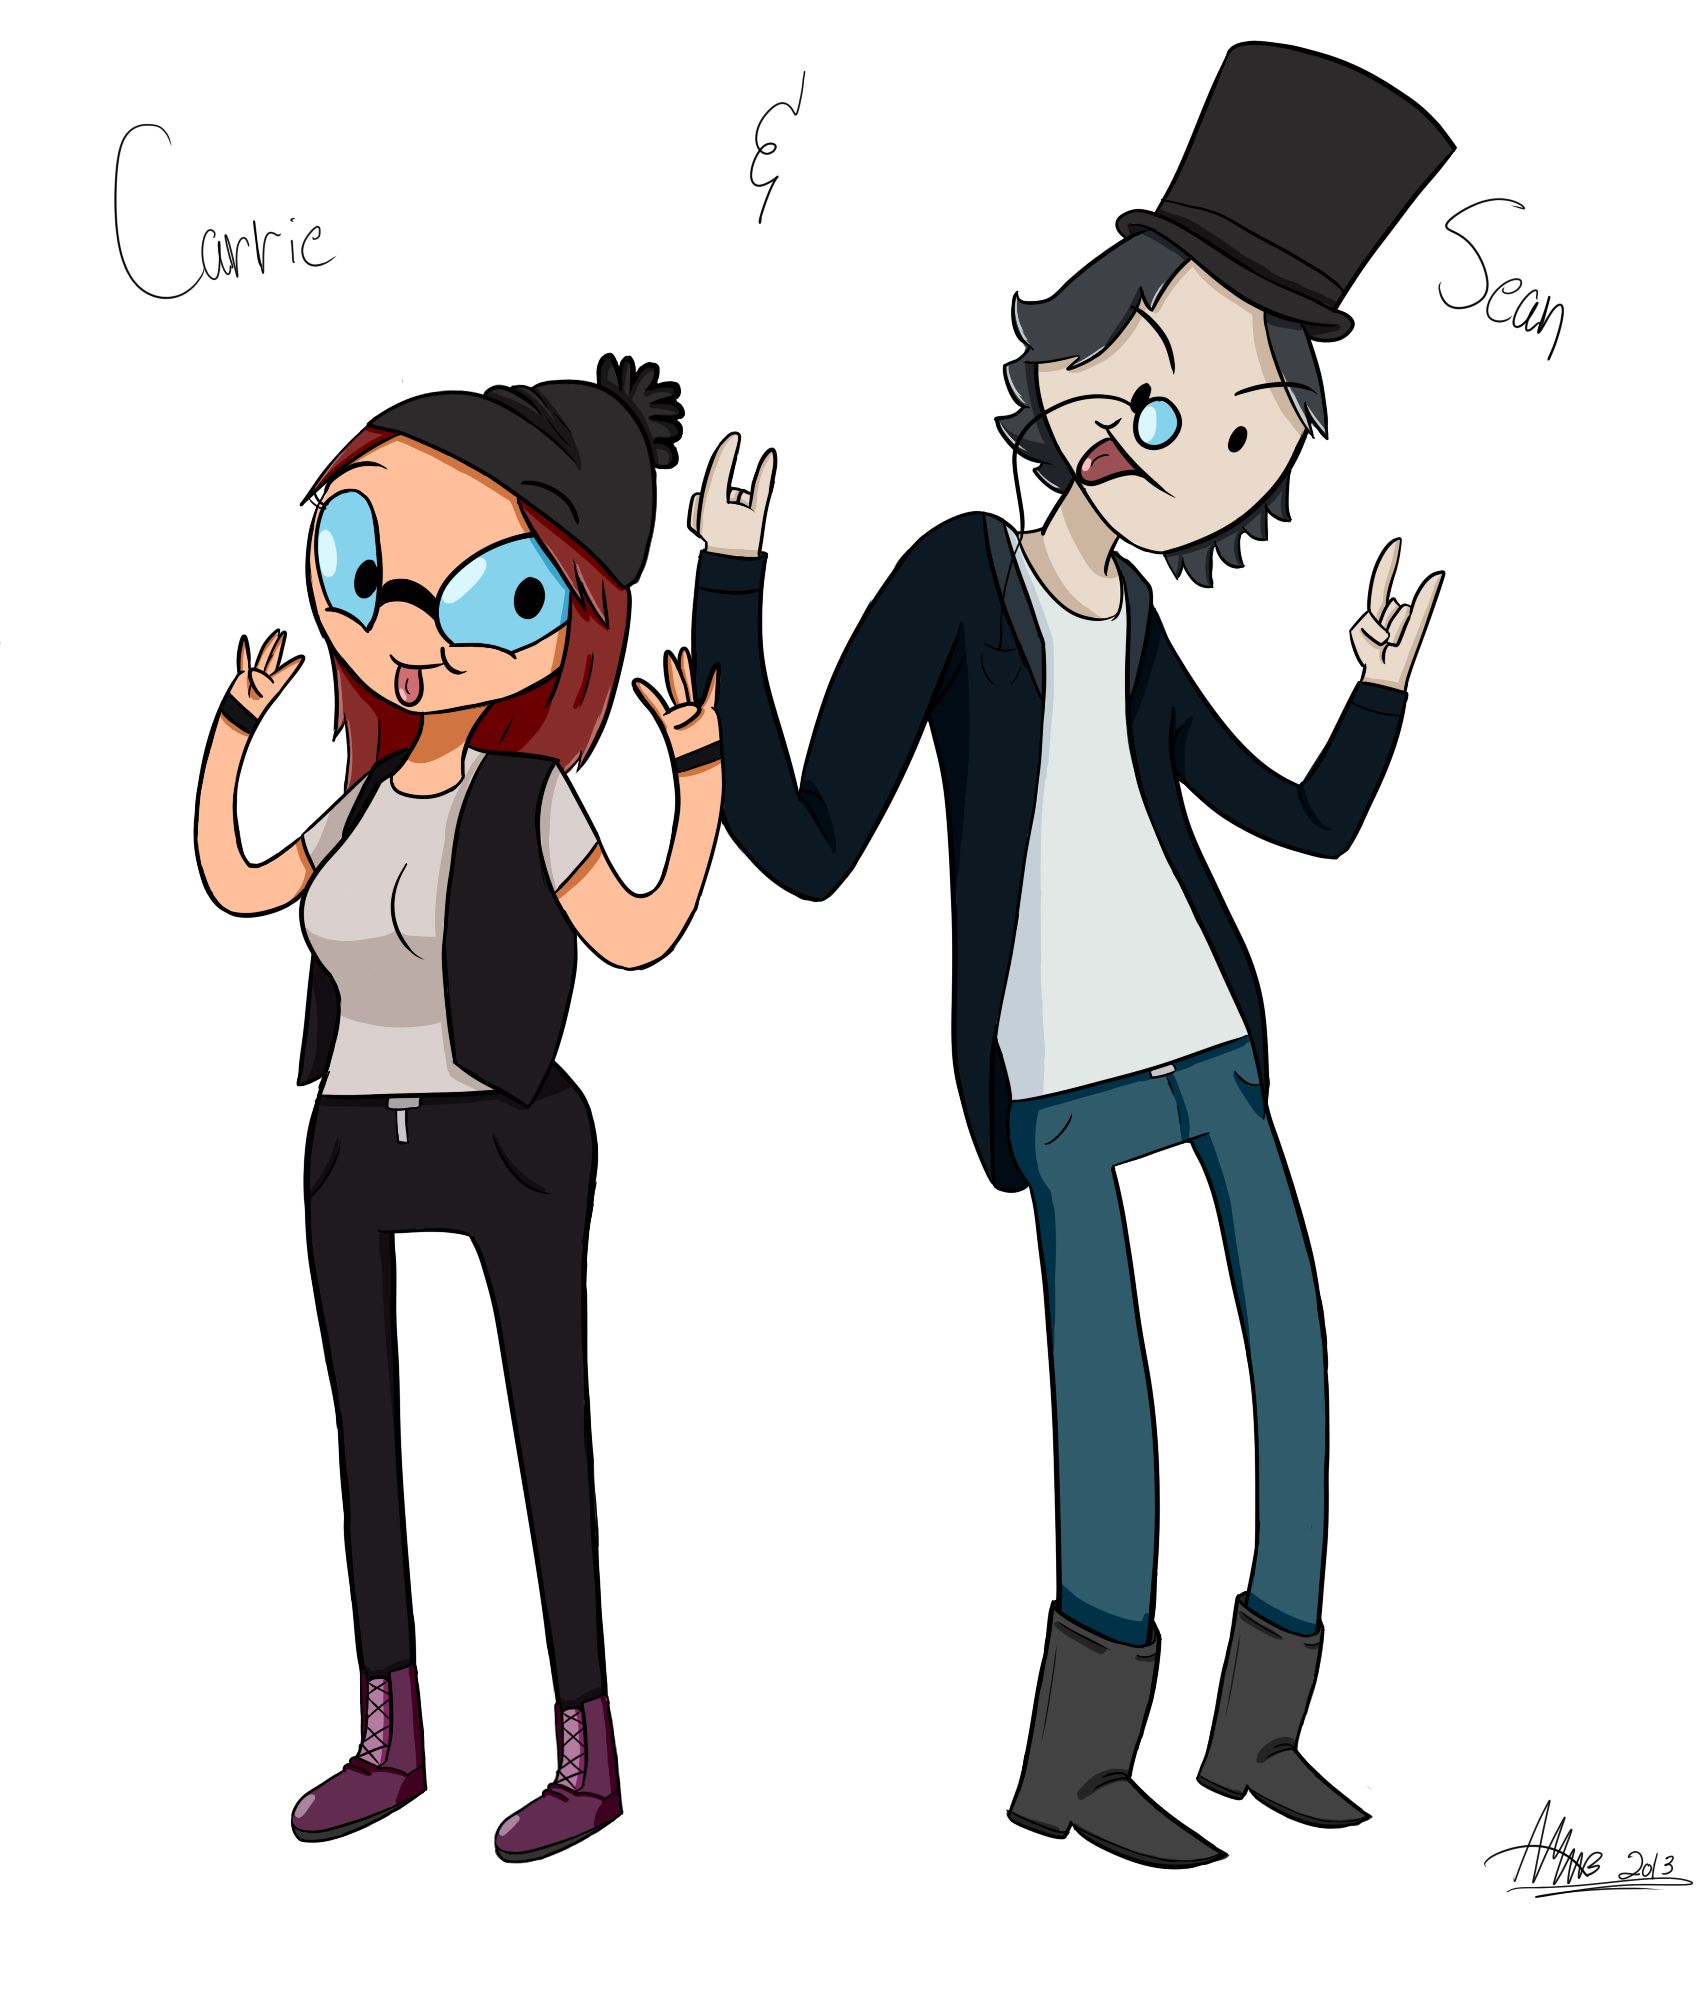 Commission: Carrie and Sean